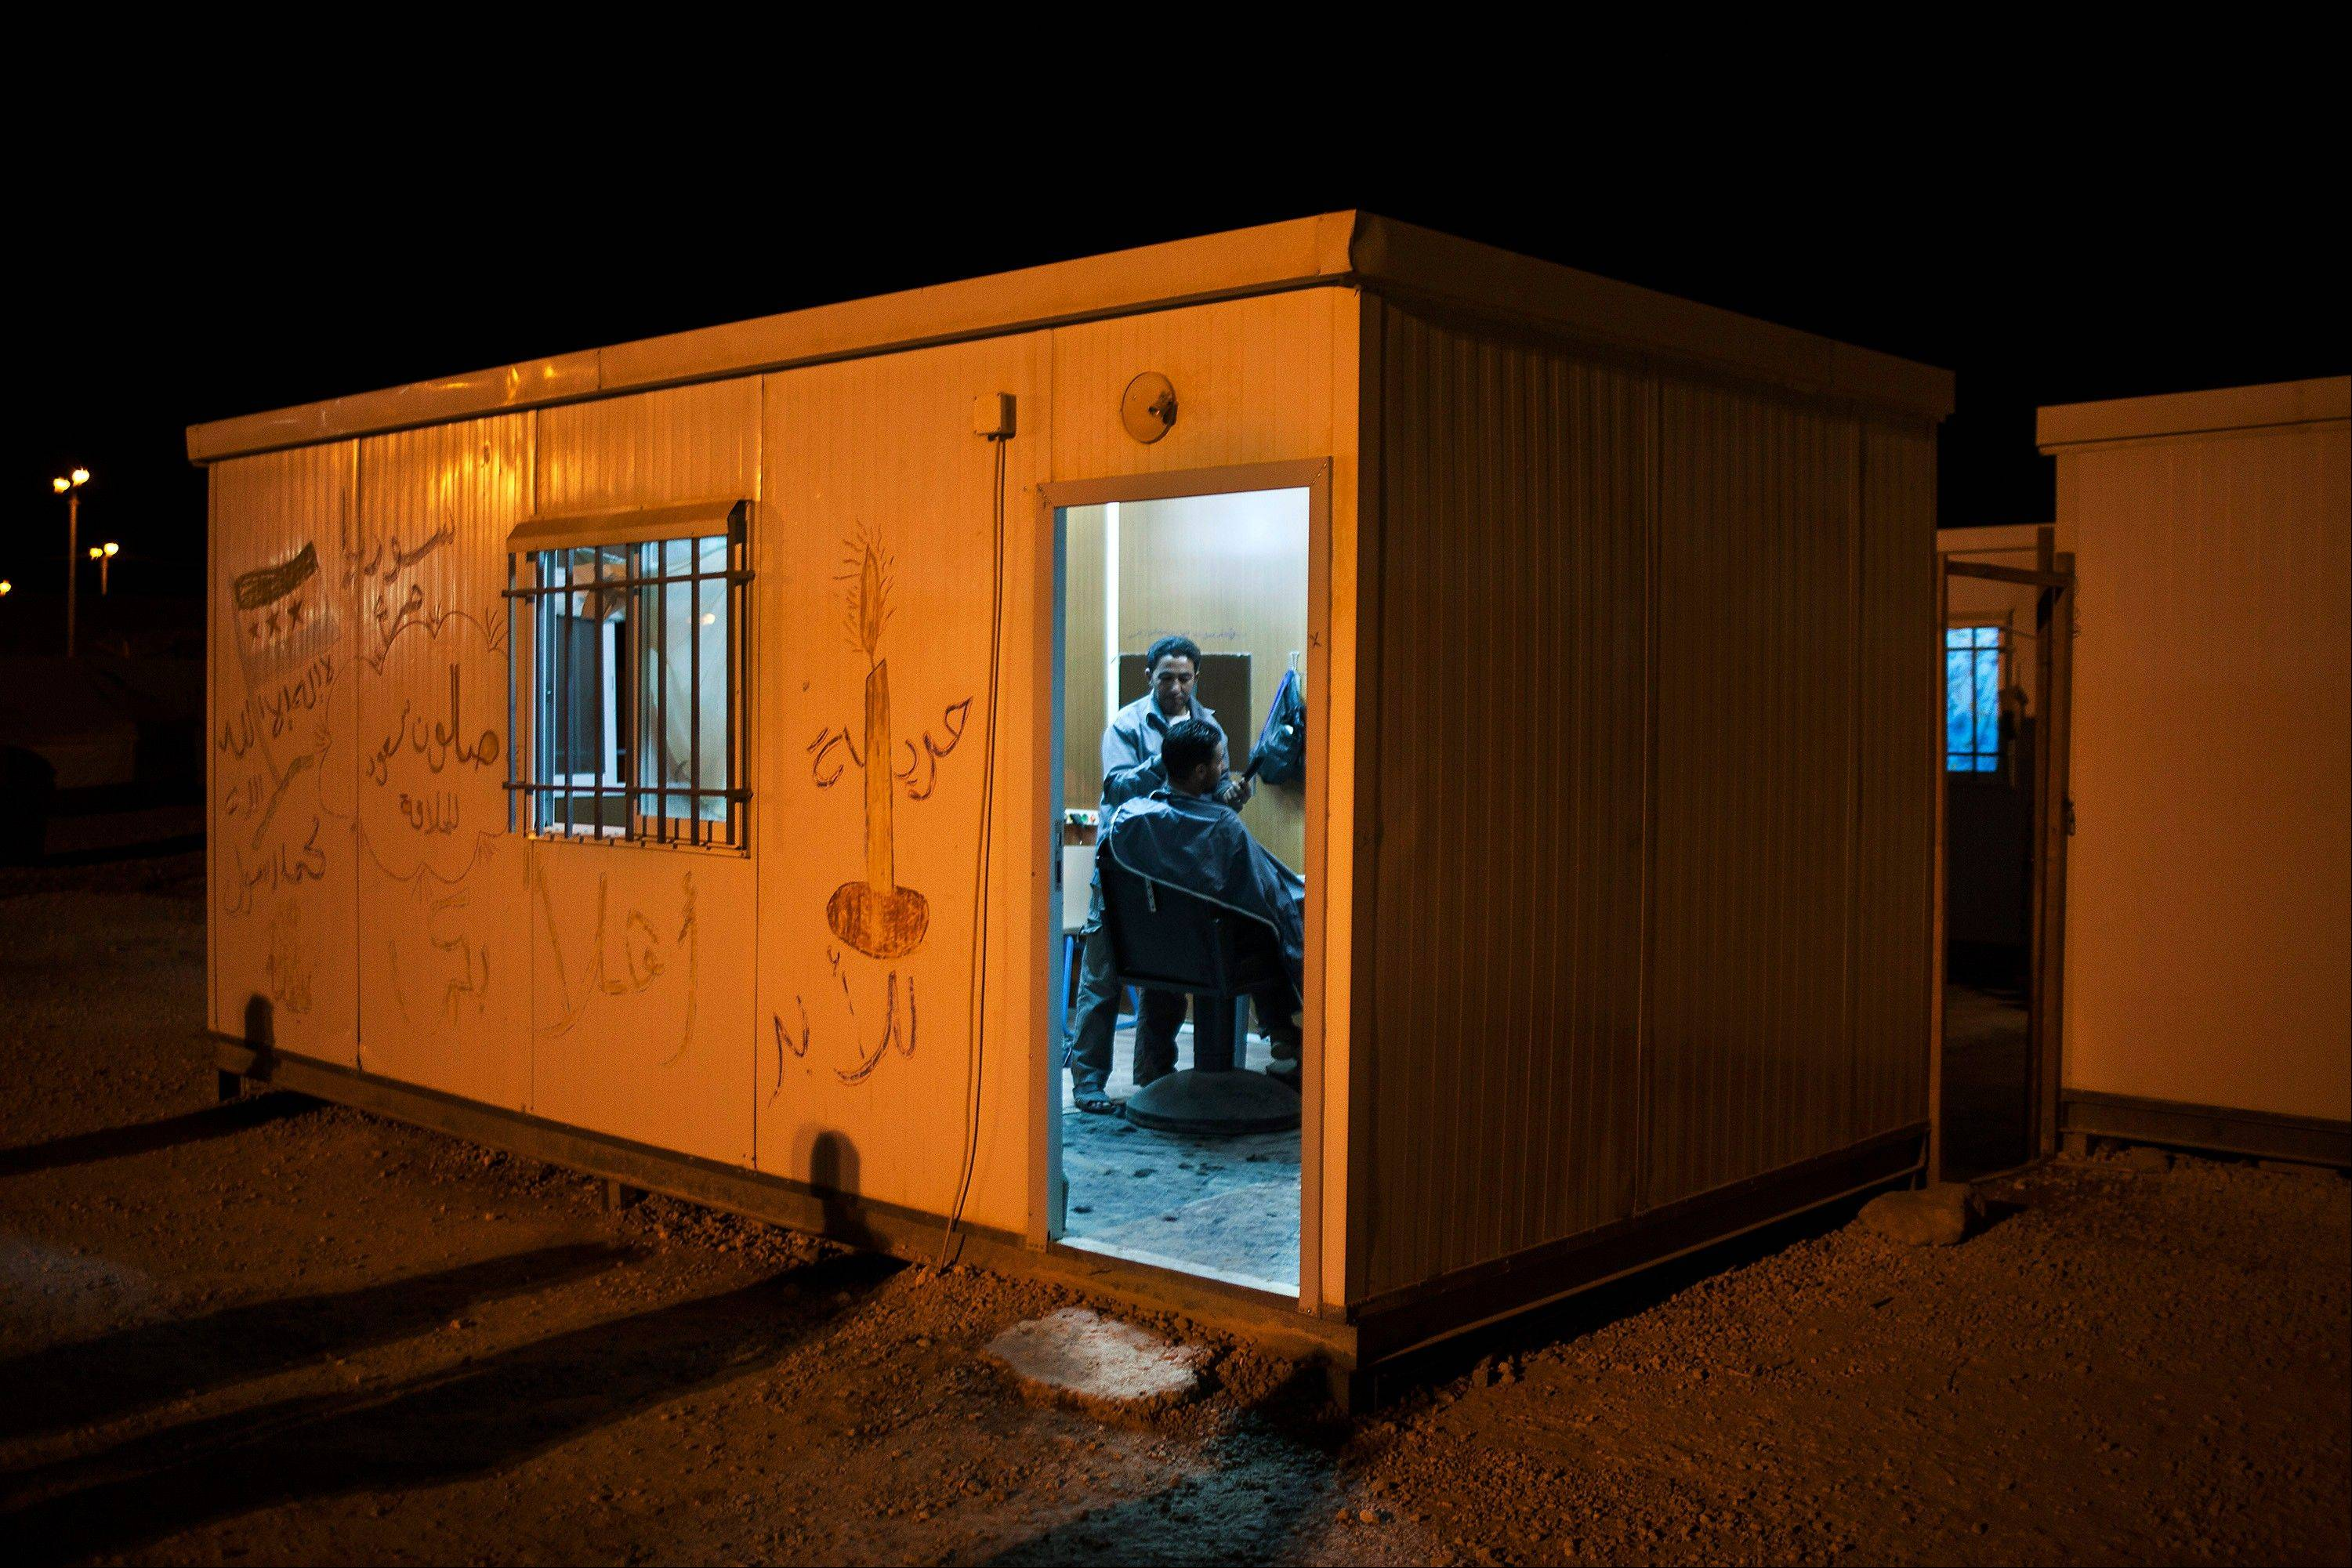 A hairdresser works at his trailer at the Zaatari refugee camp near the Syrian border in Jordan.